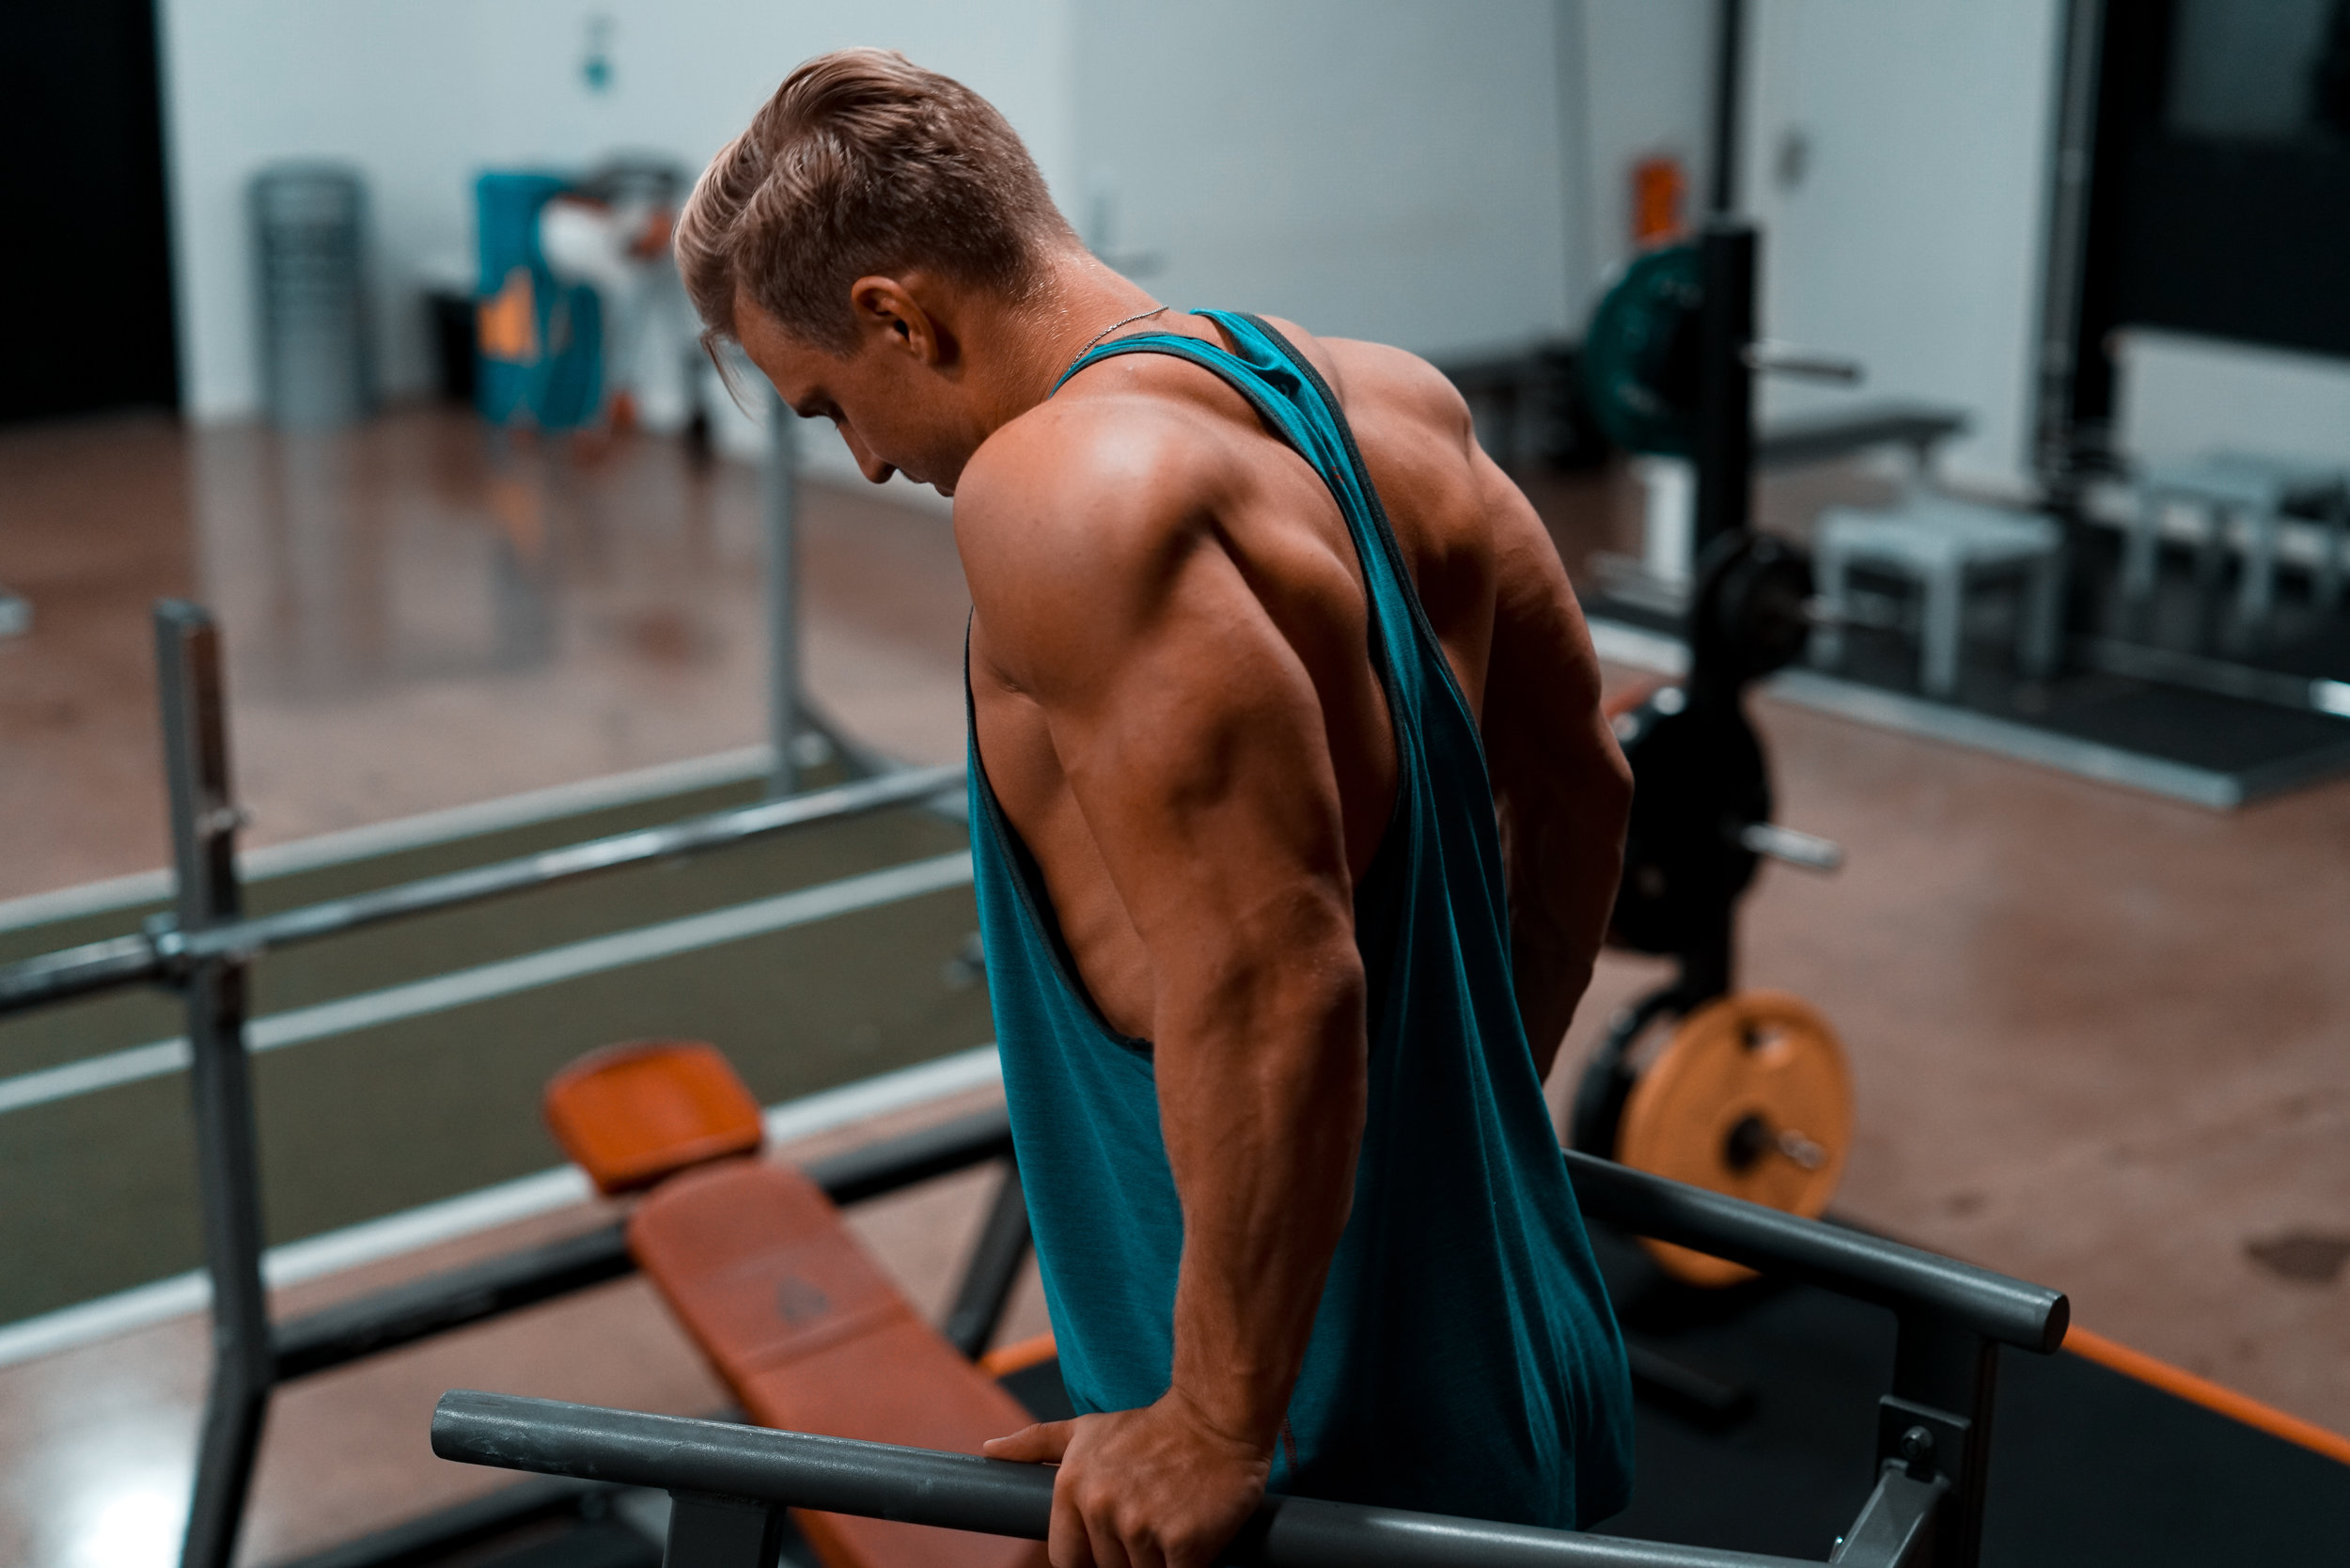 Bodybuilding - Optimizing skeletal muscle hypertrophy by ensuring an optimal level of stimulus for maximum adaptation and avoiding plateaus through a periodized approach.